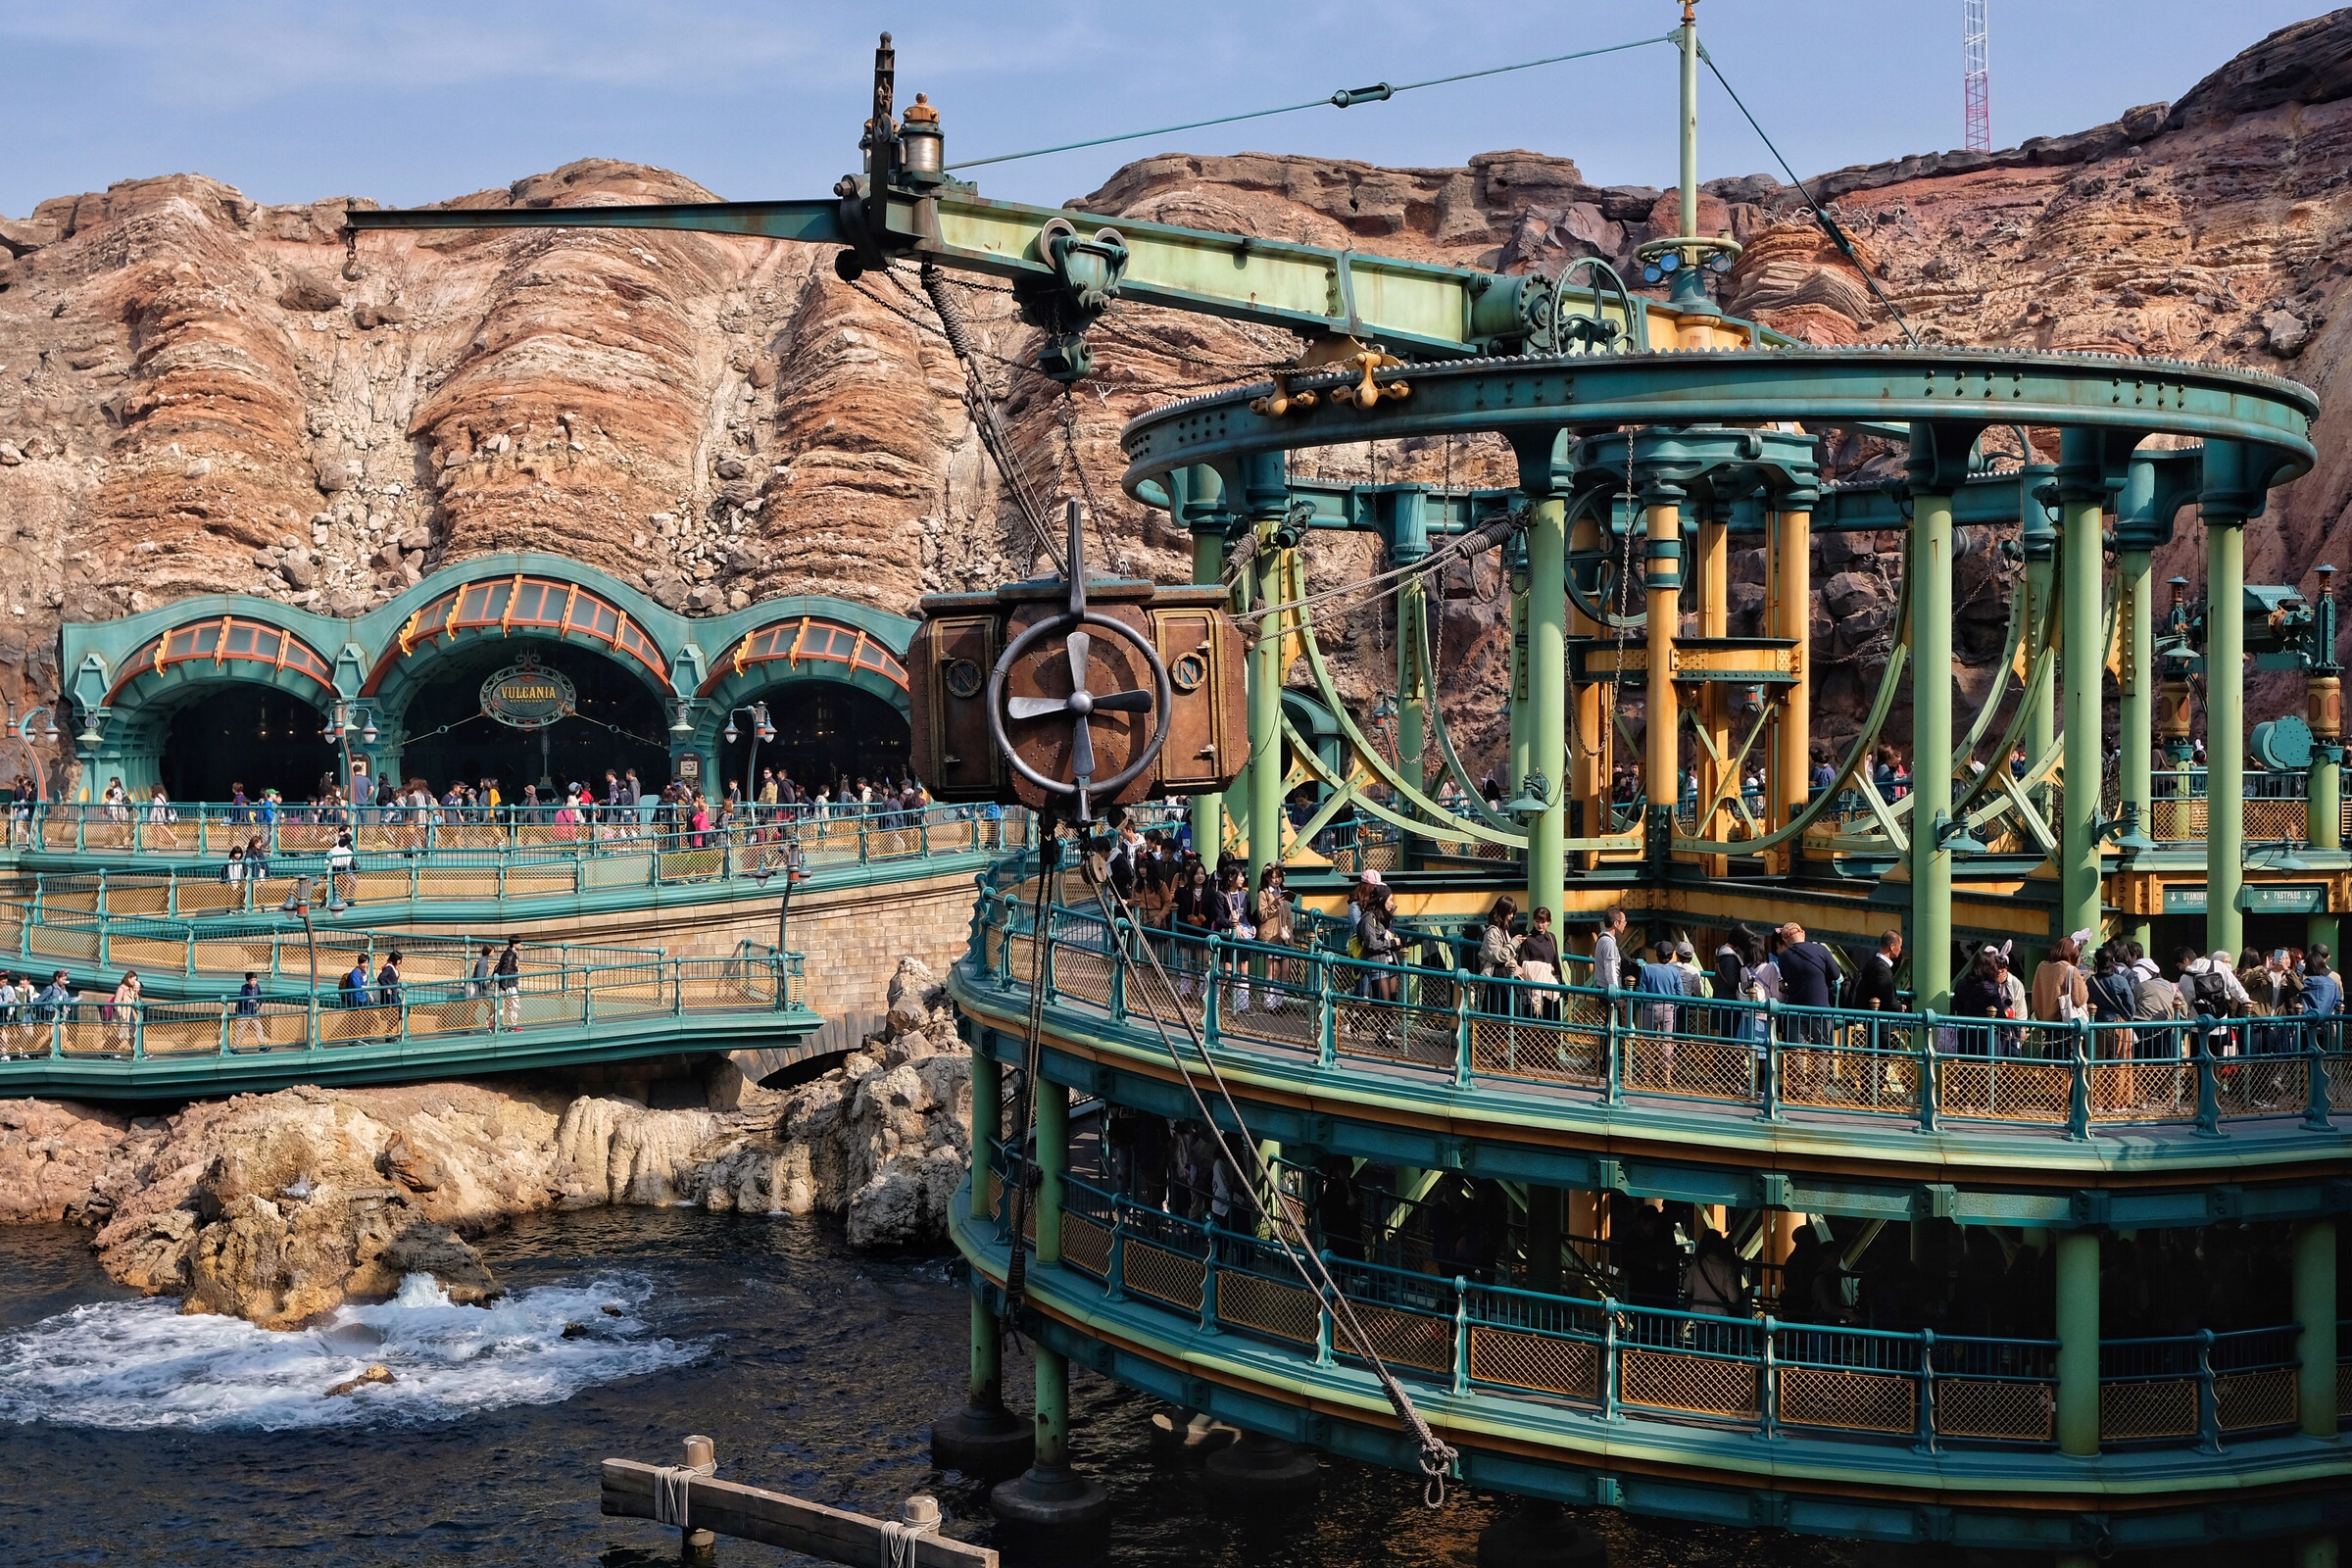 Japan – Tokyo – DisneySea – 20,000 Leagues Under the Sea